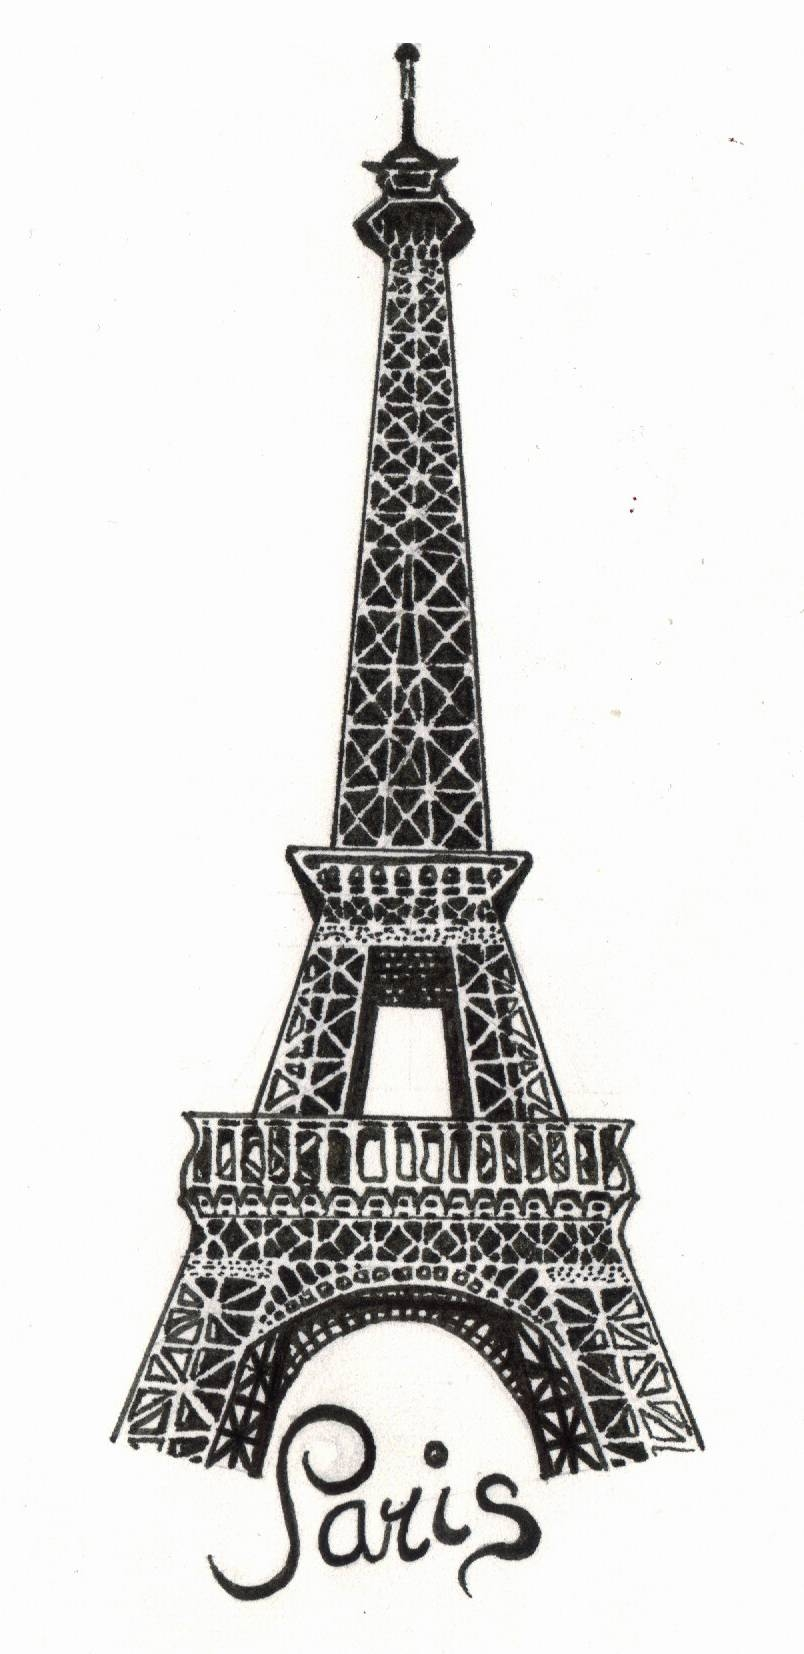 Paris – The Eiffel Towerthe Snow White On Deviantart Intended For Most Current Metal Eiffel Tower Wall Art (View 20 of 30)